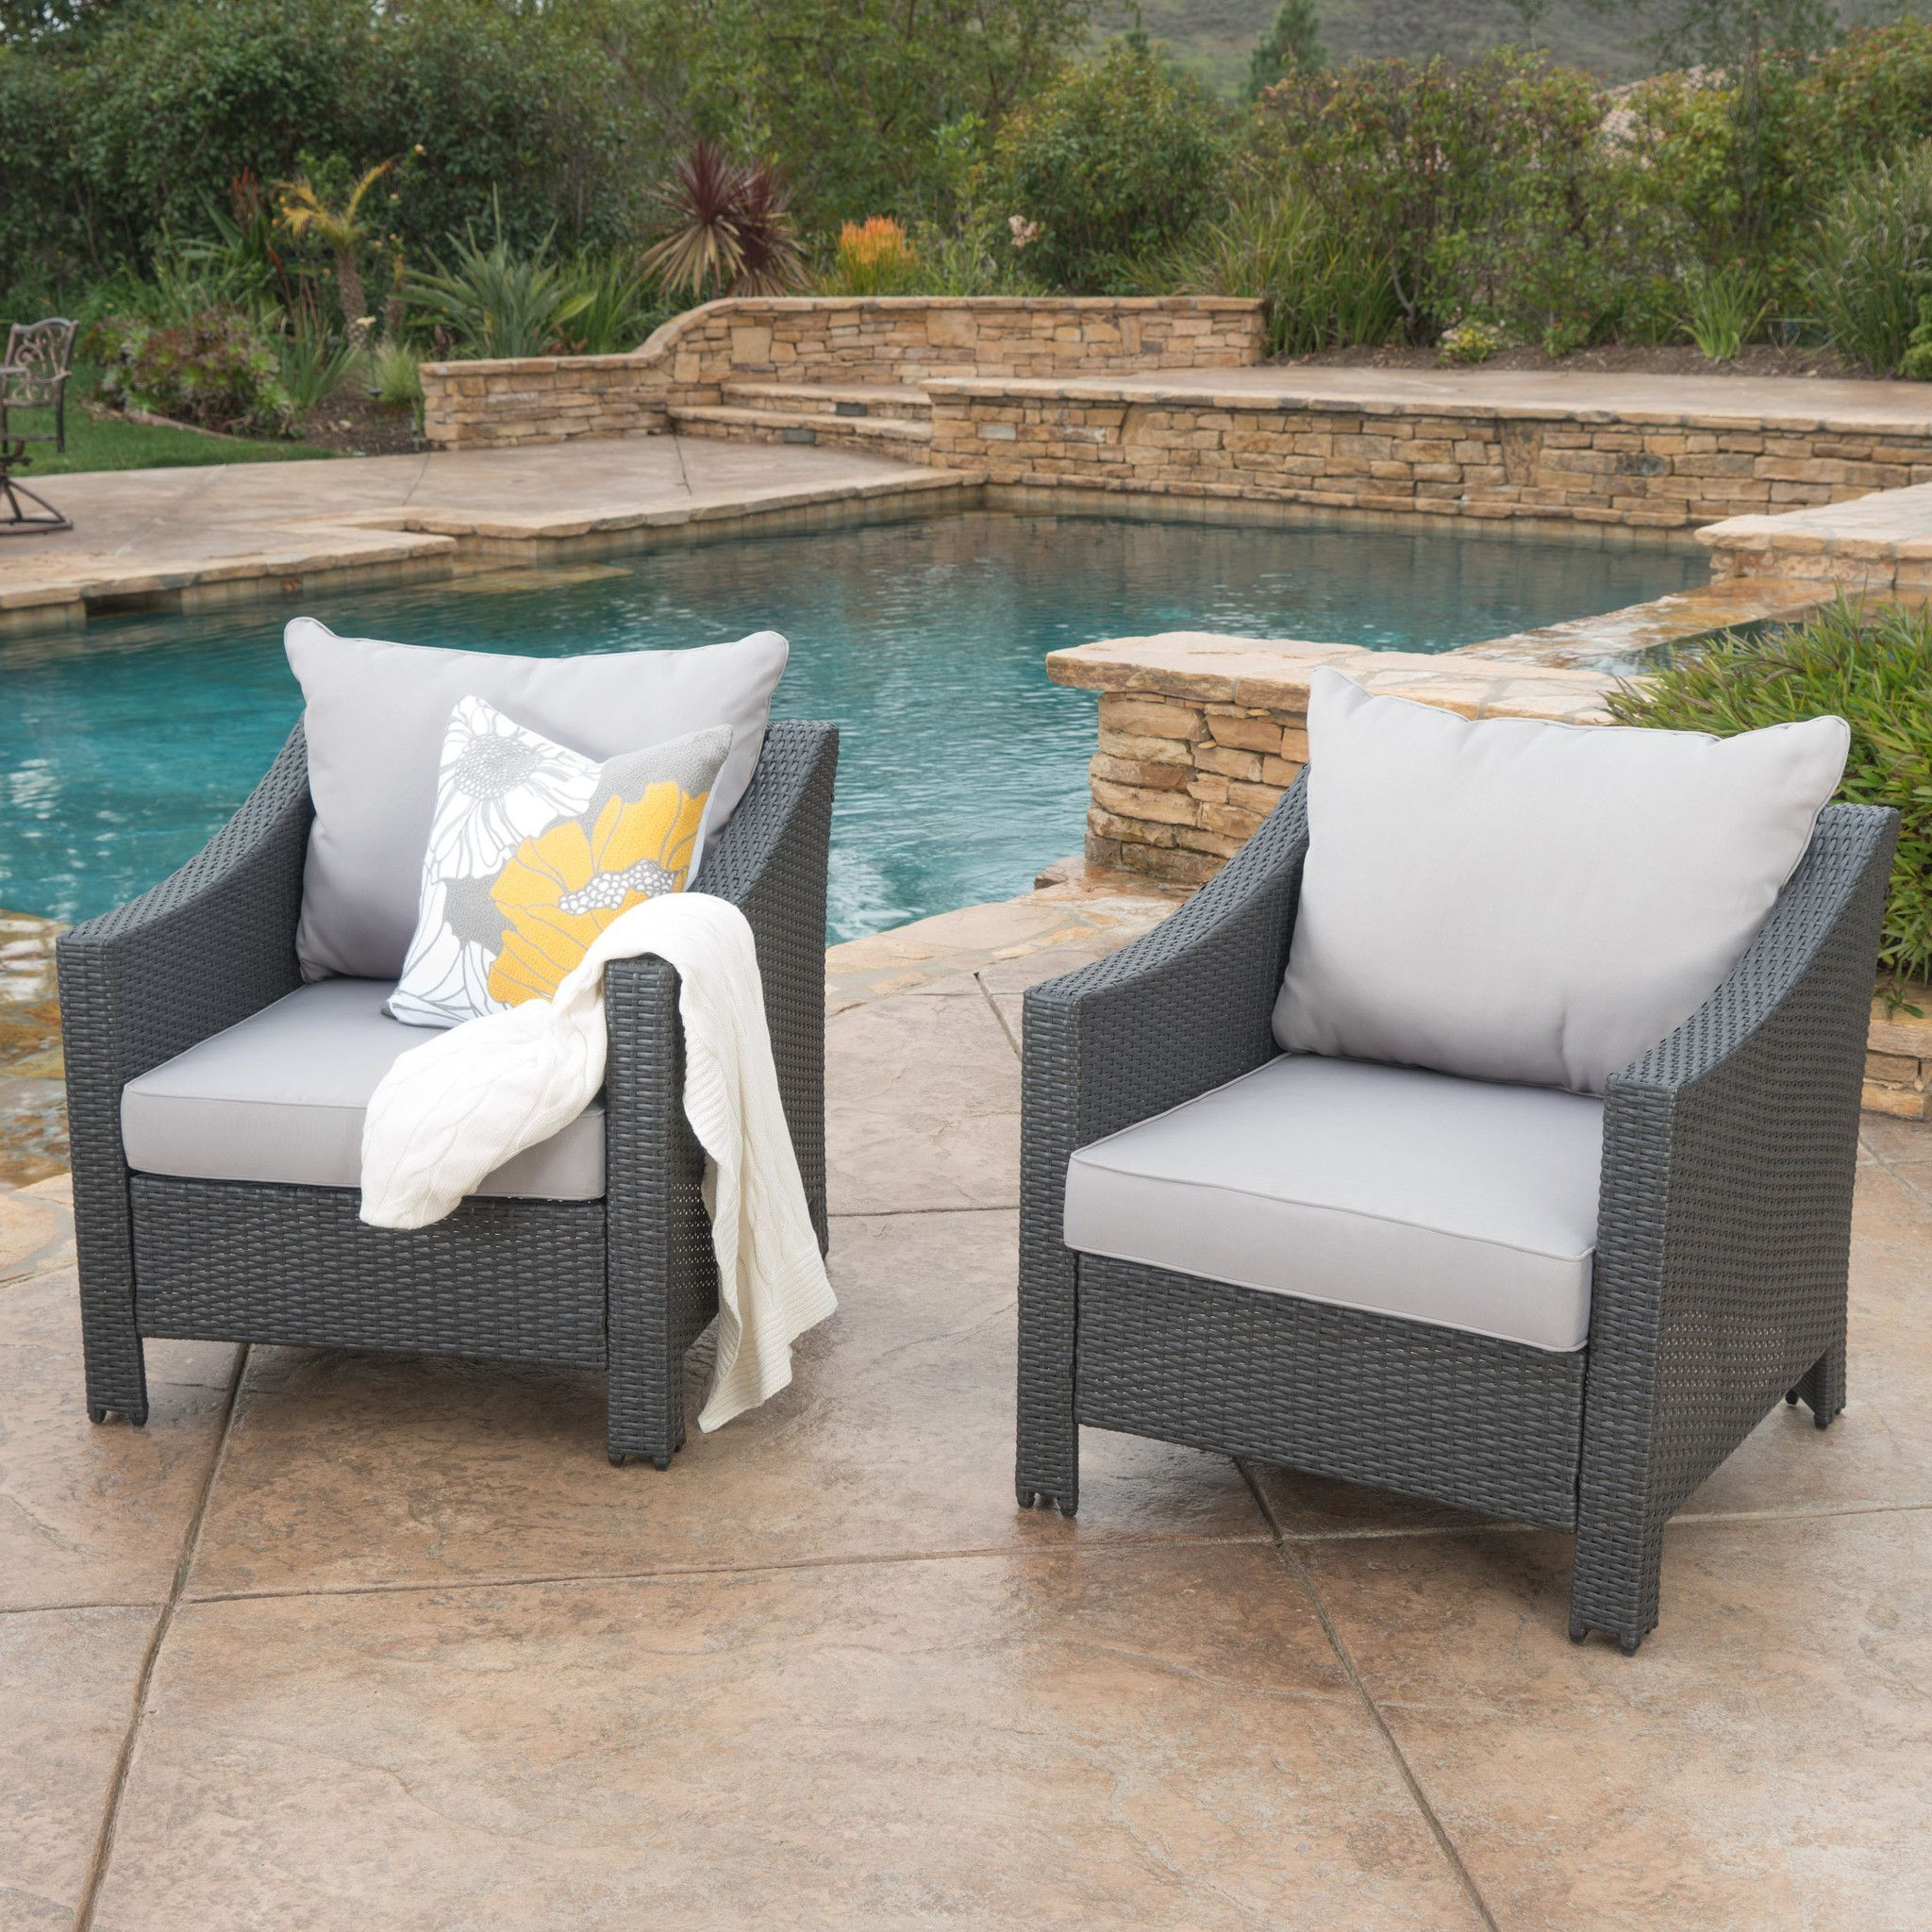 Cortez Outdoor Wicker Club Chair W/ Water Resistant Cushions Throughout Latest Lavina Outdoor Patio Daybeds With Cushions (View 3 of 20)